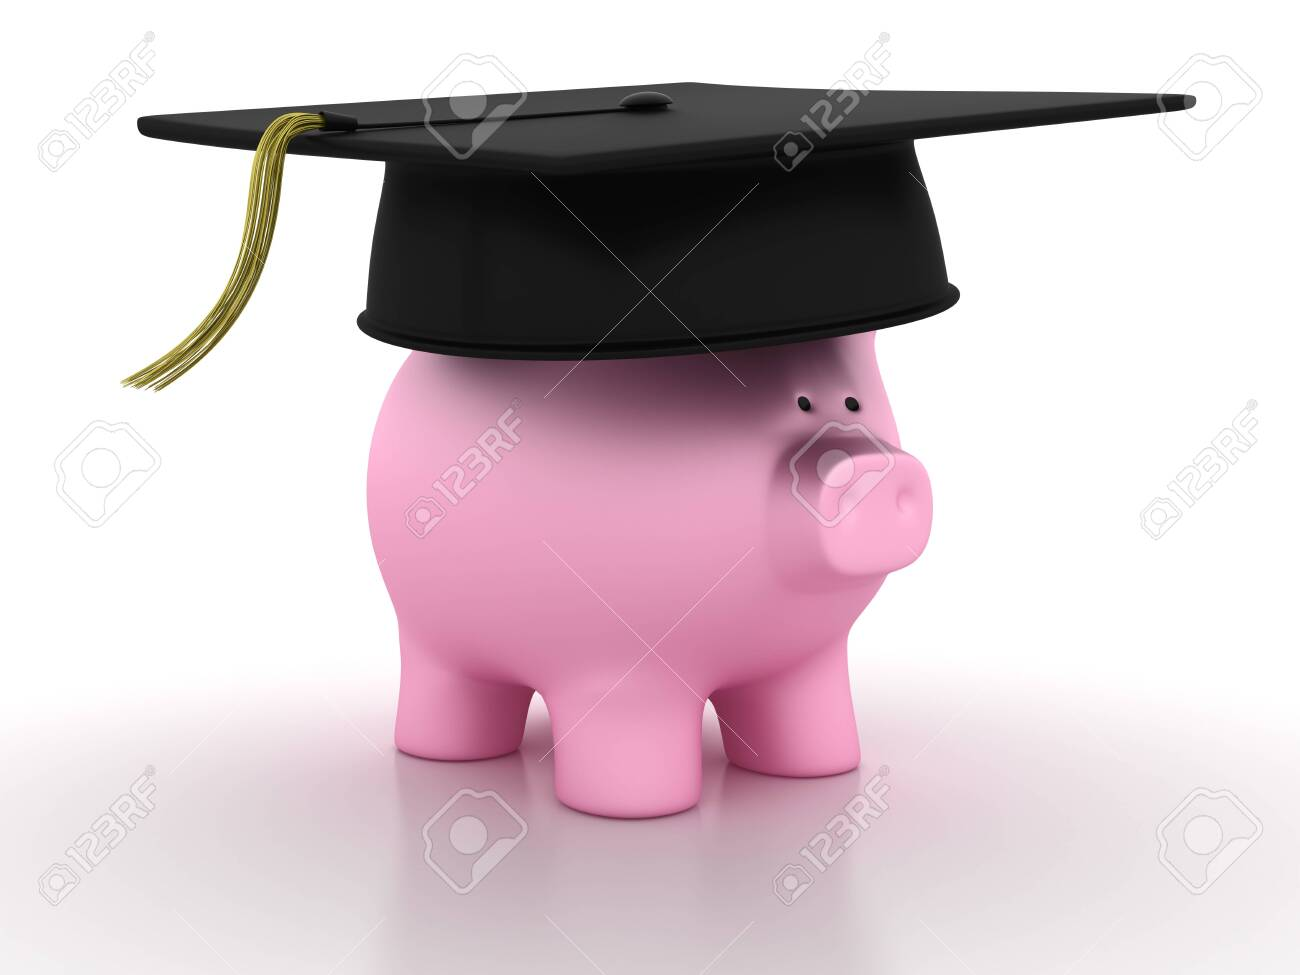 Piggy Bank with Mortarboard - High Quality 3D Rendering - 128391994